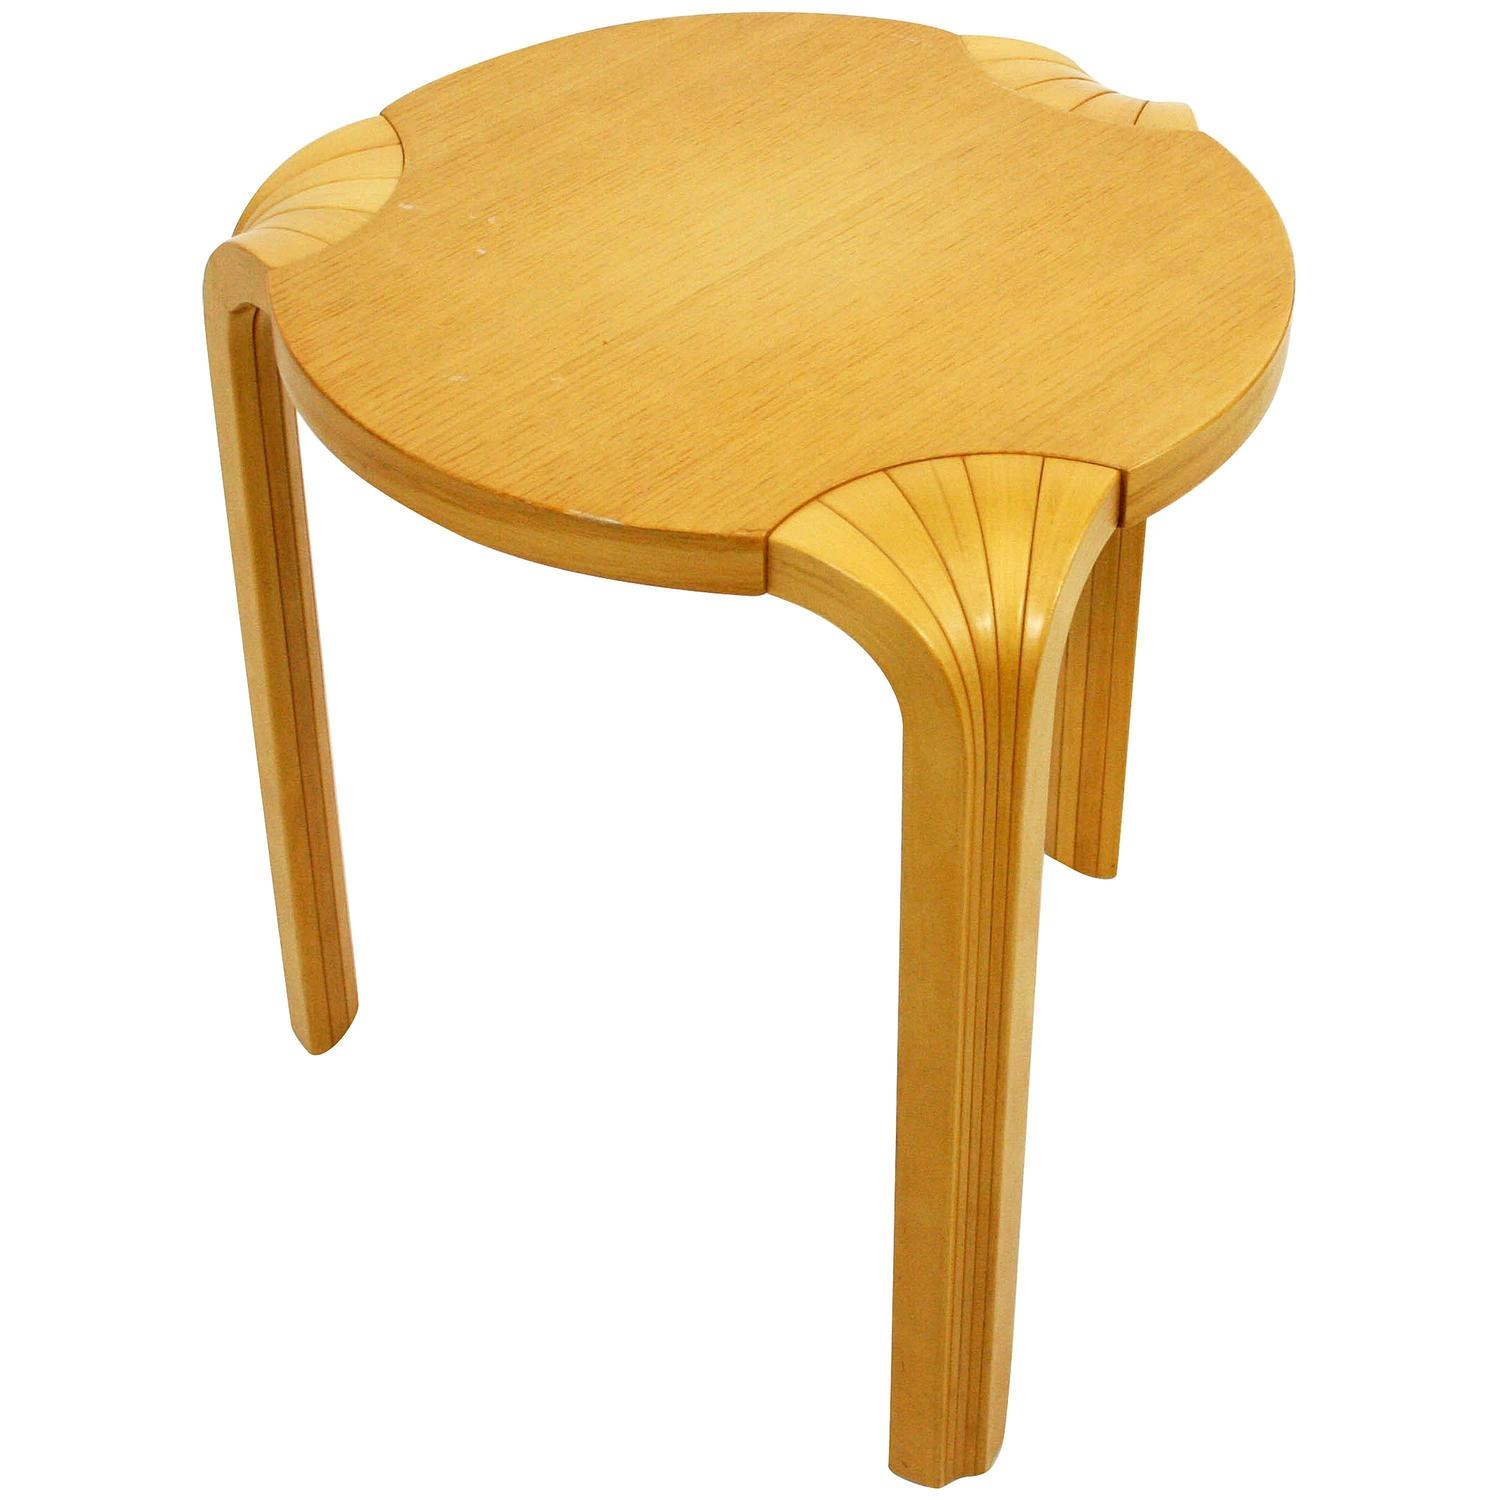 Alvar Aalto X600 Fan Leg Stool For Artek Through Icf At